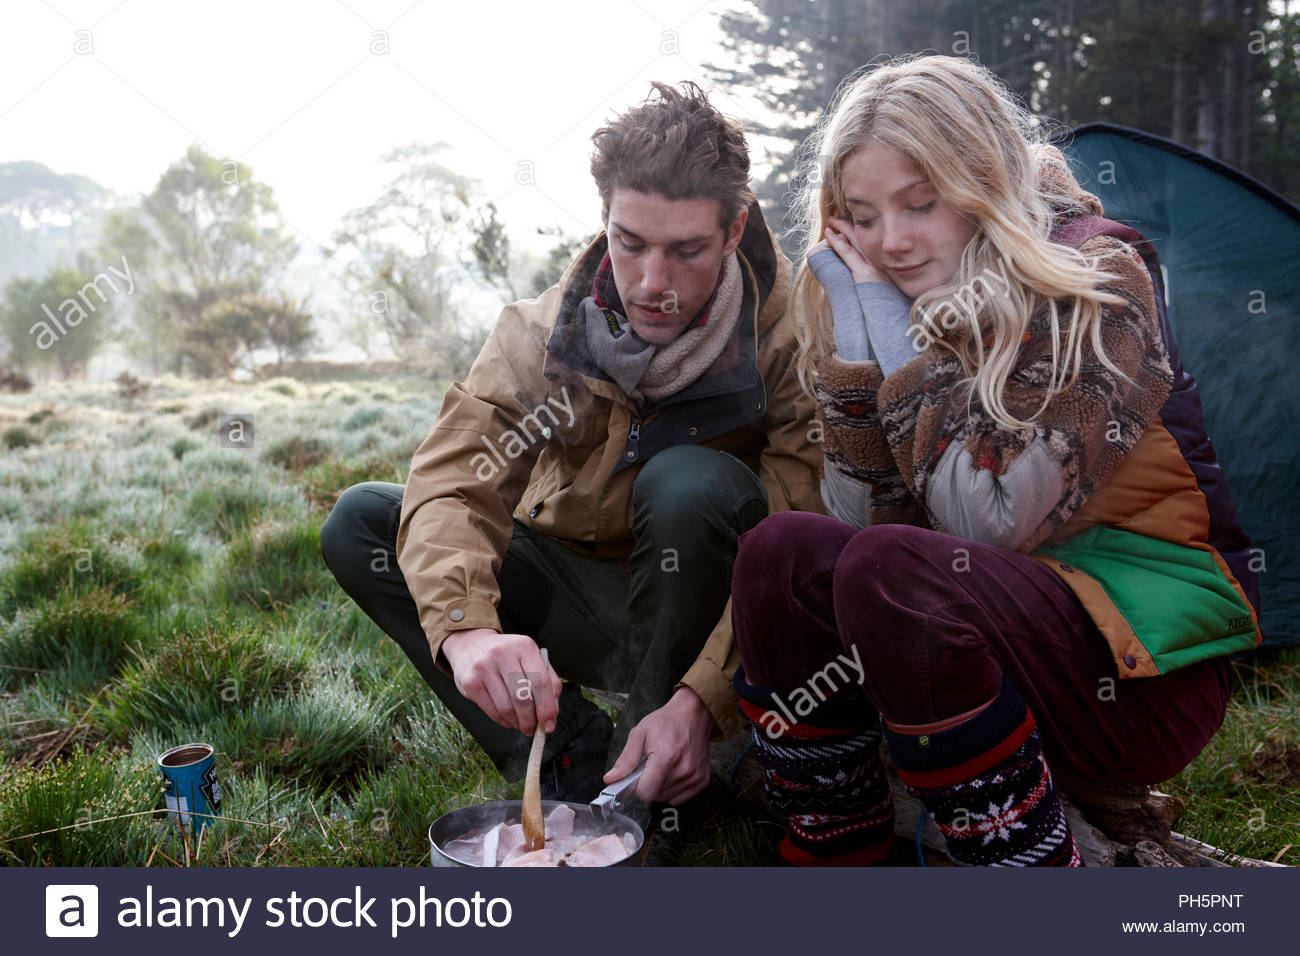 Couple cooking while camping - Stock Image